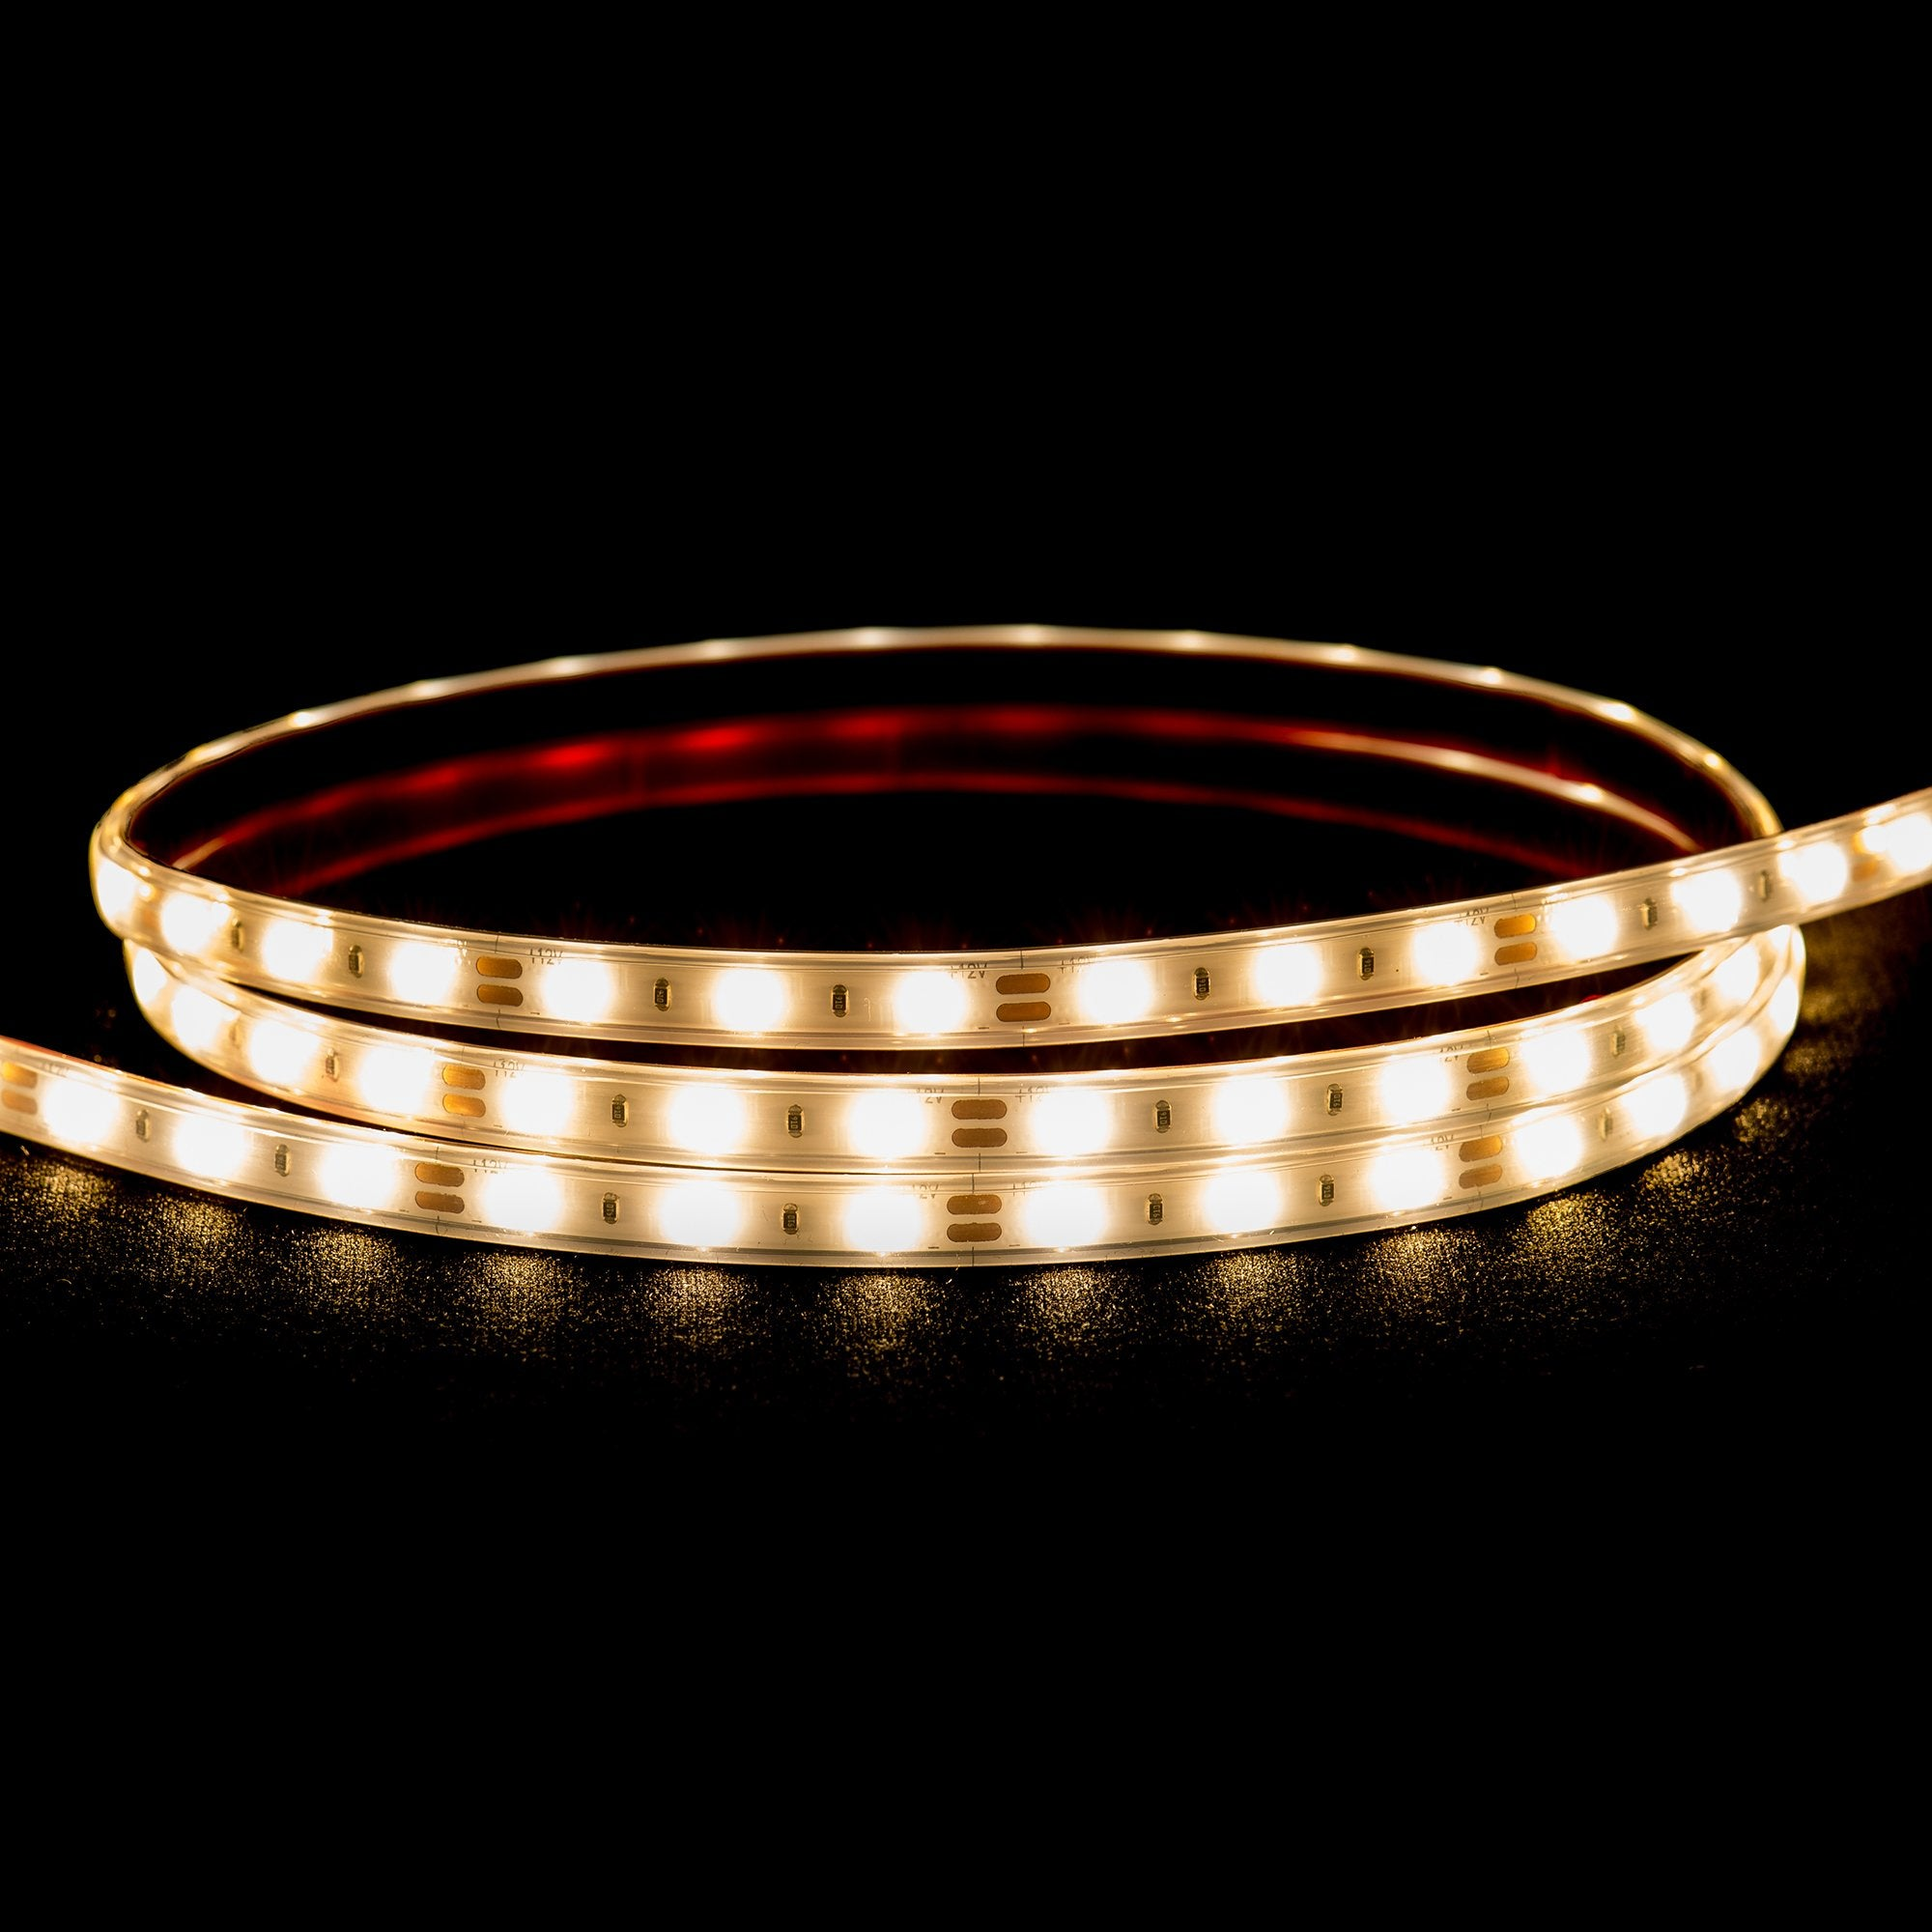 HV9716-IP54-60-3K-5M - 4.8w IP54 LED Strip 3000k 5m Roll